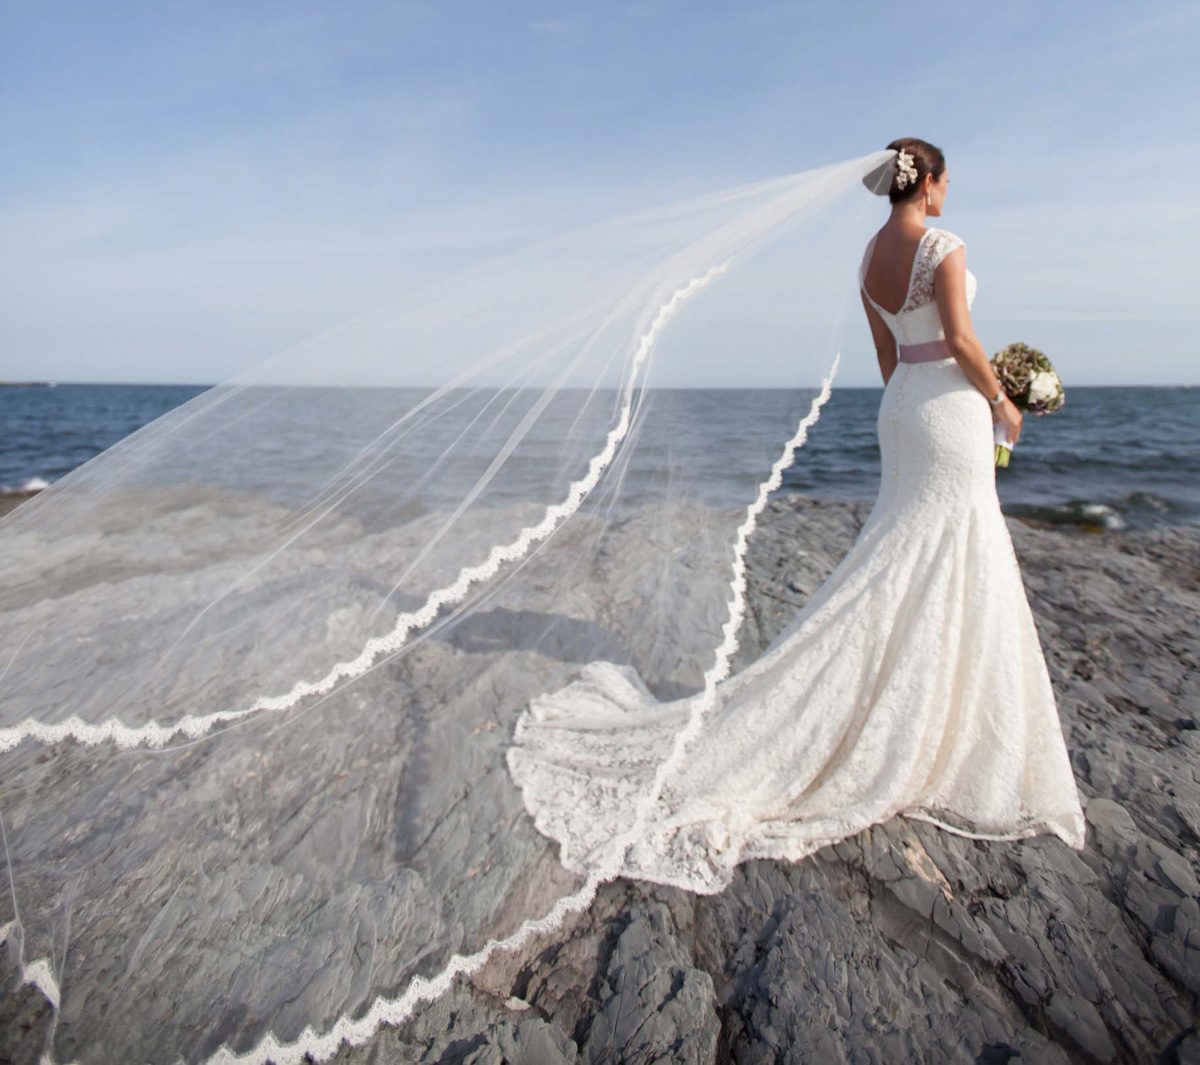 lace trim cathedral veil blows in the sea breeze